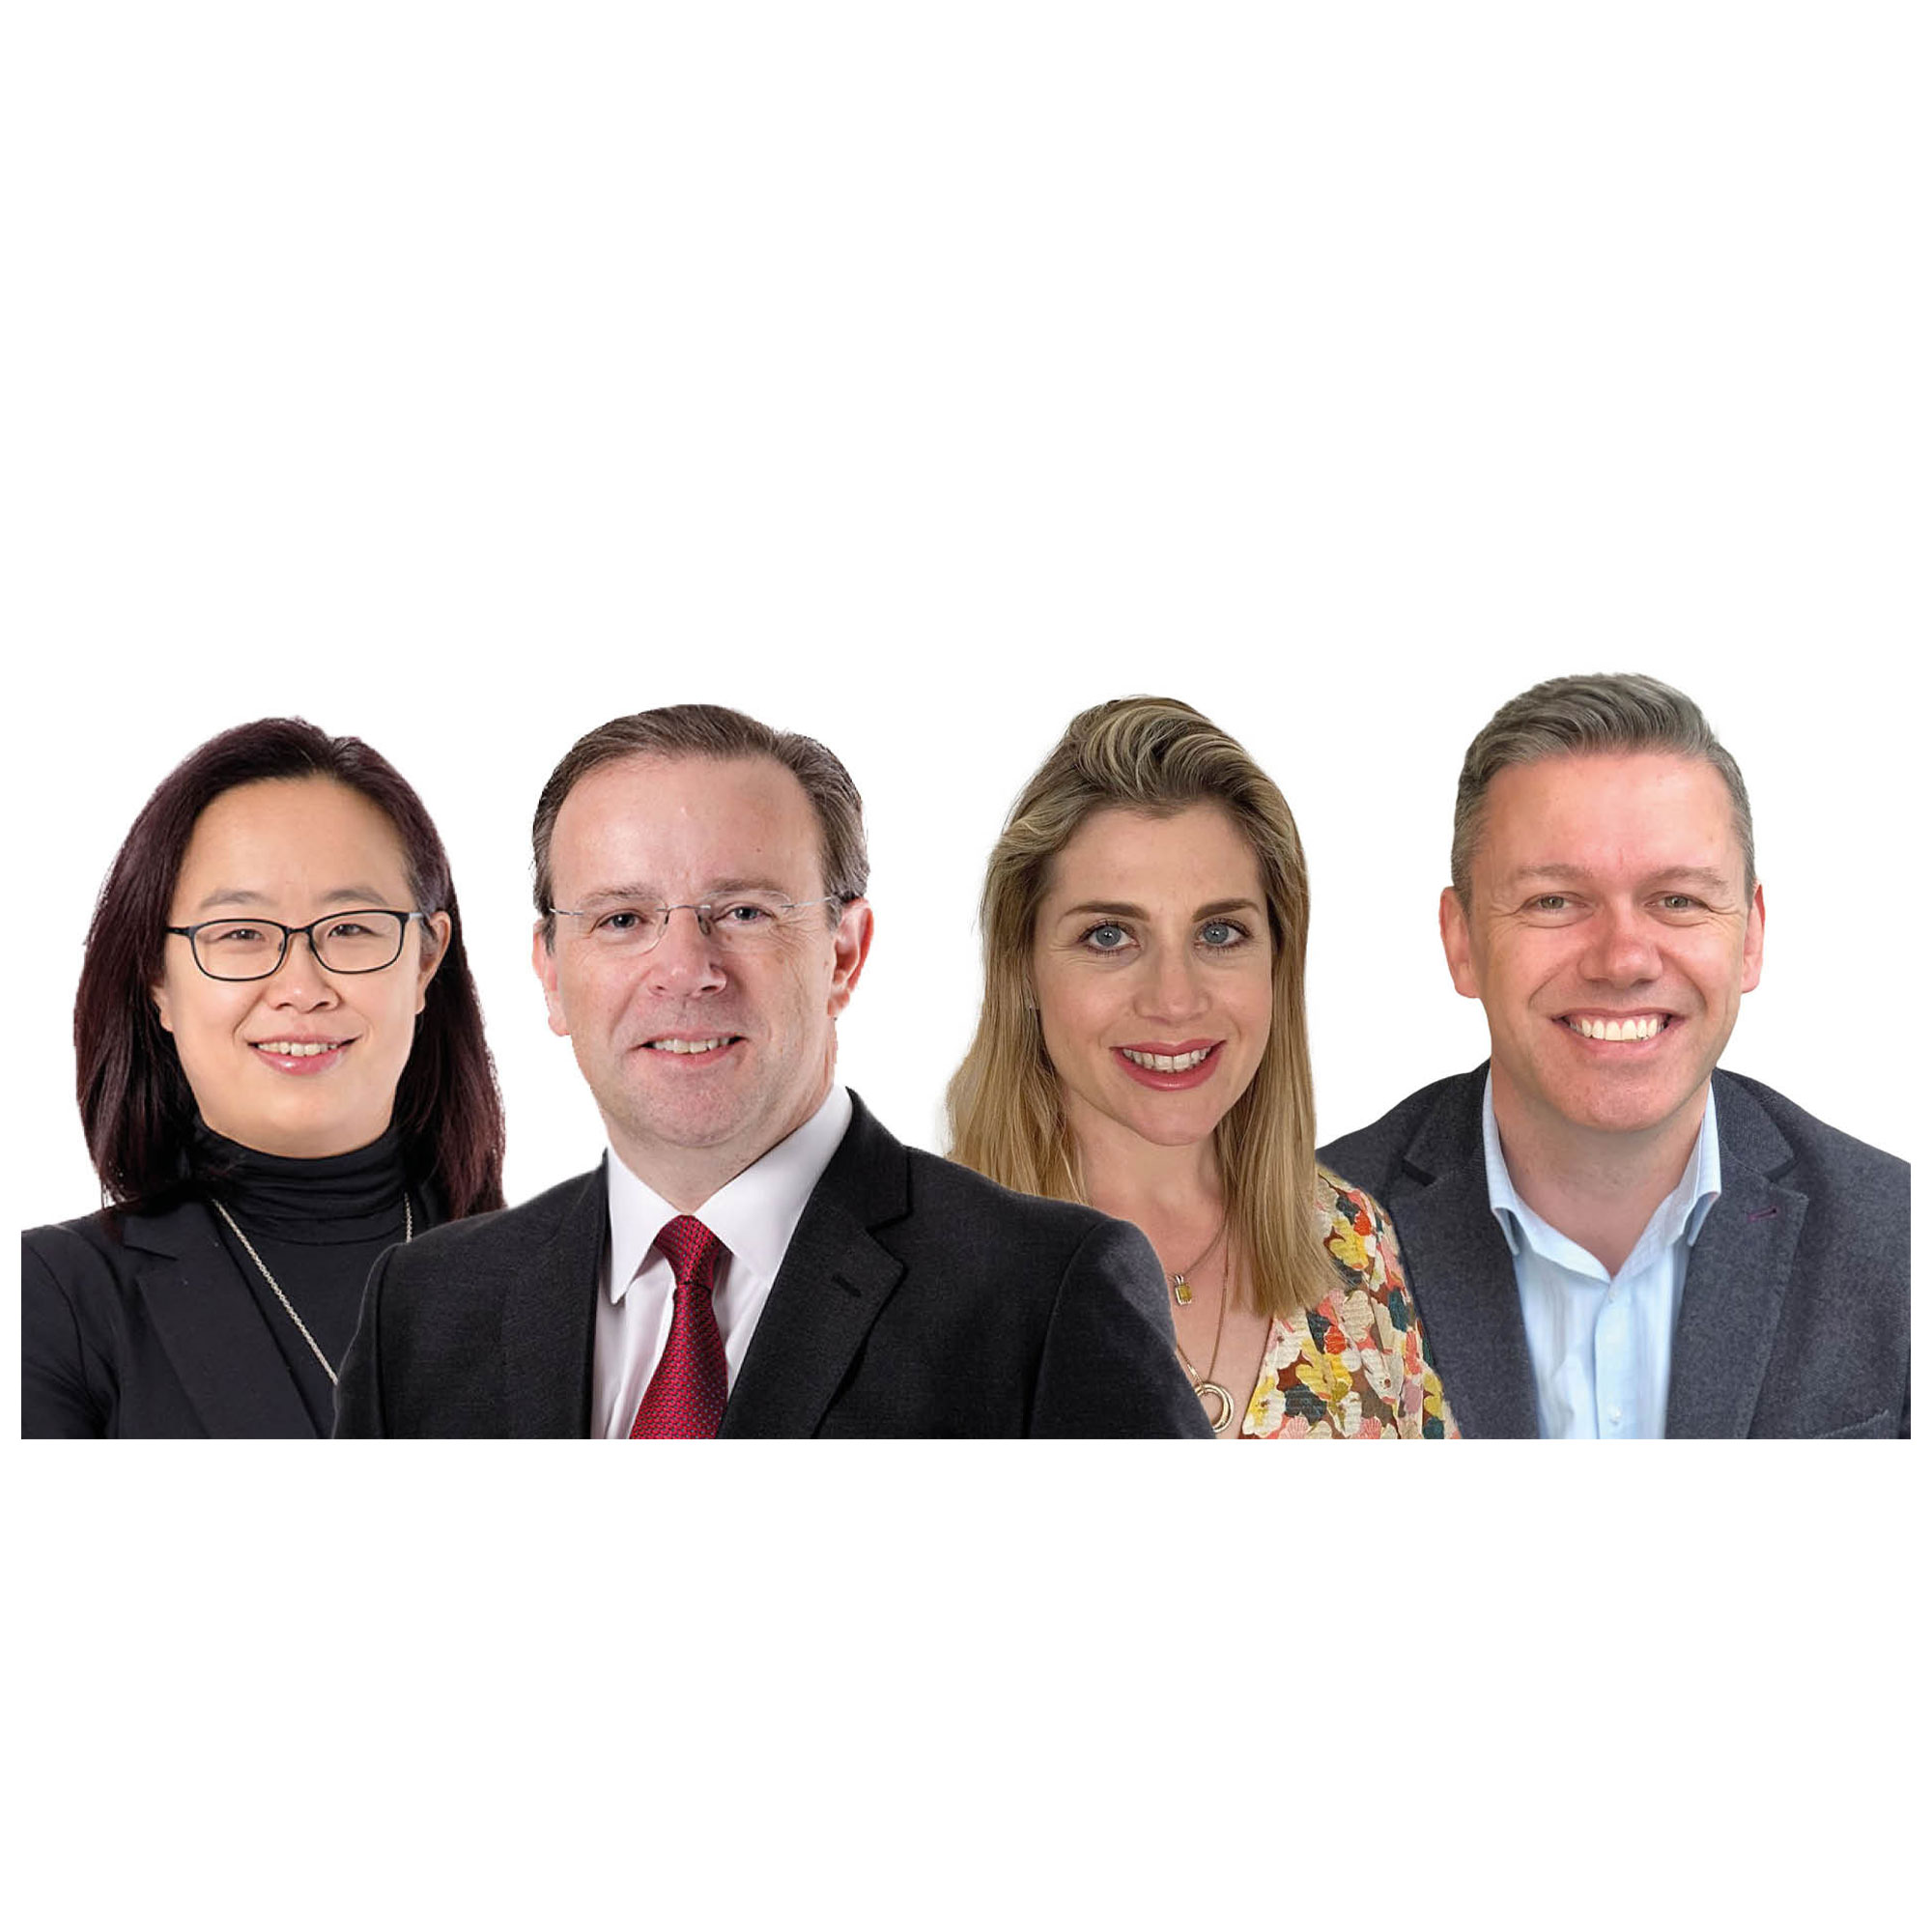 Meet our experts